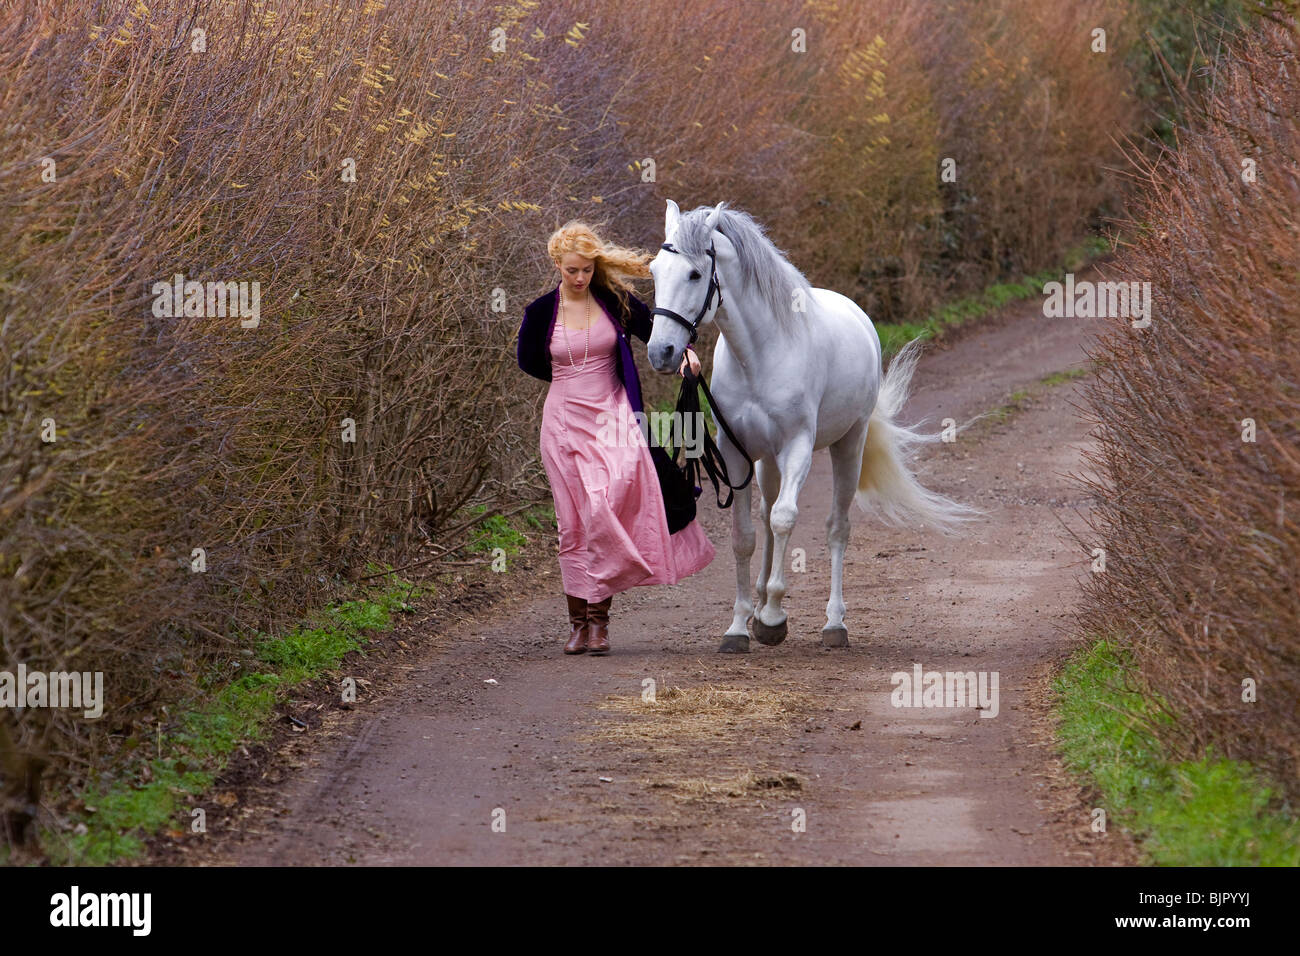 Girl with horse 3 Stock Photo